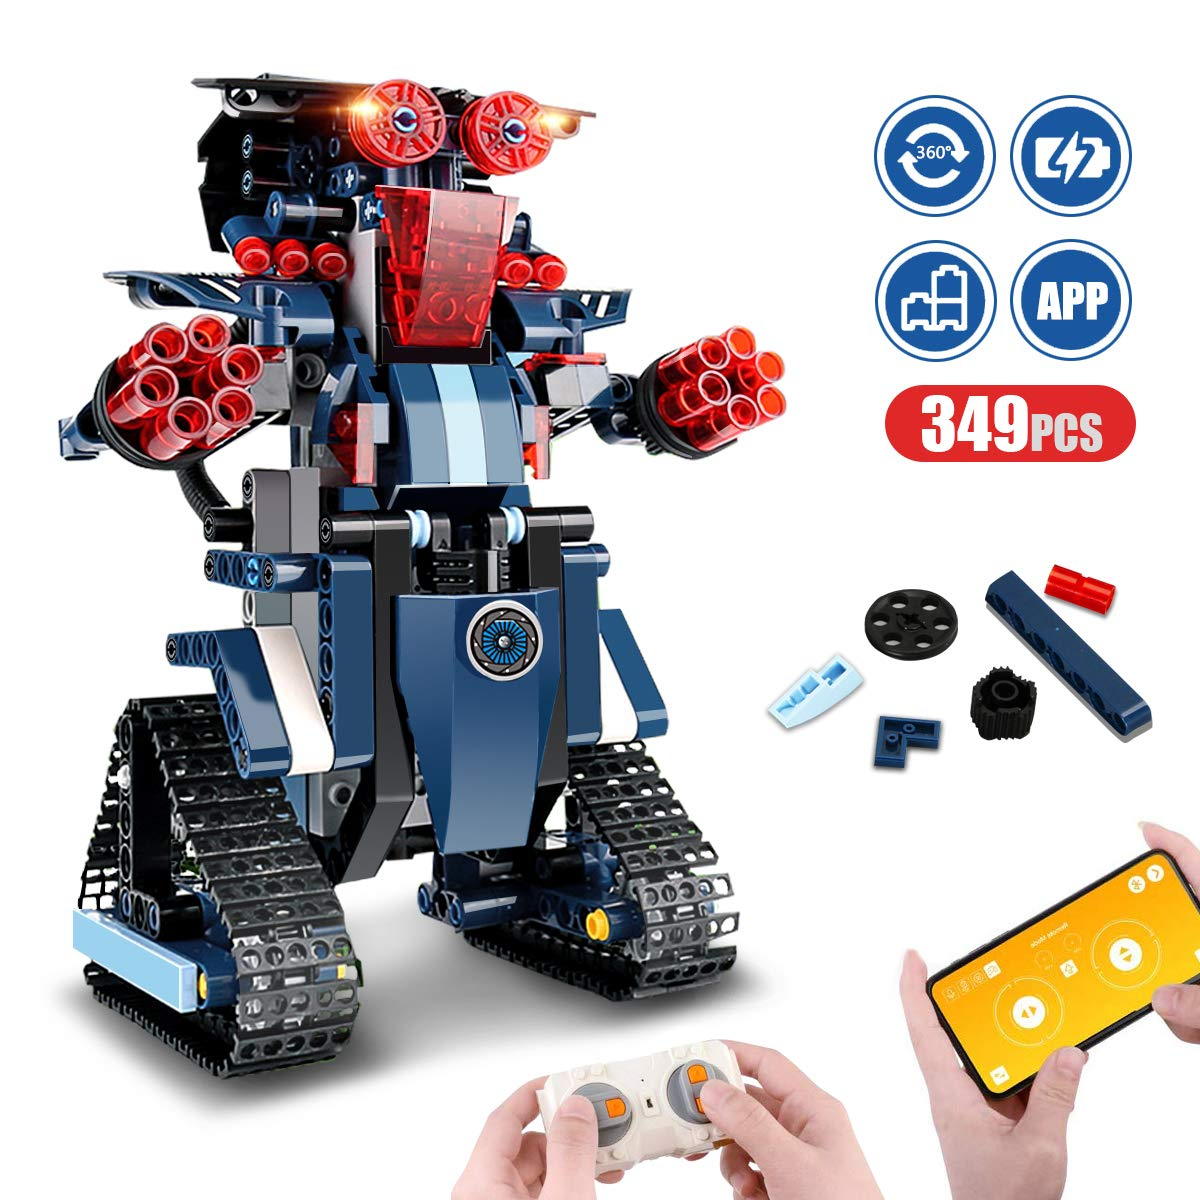 Remote Control Robot, RC Building Kit Building Block Robot Educational RC Robot Bricks STEM Toys Construction Engineering Building Blocks Learning Set Intelligent Gift for Kids Age 8 Years Old and up - wiihuu